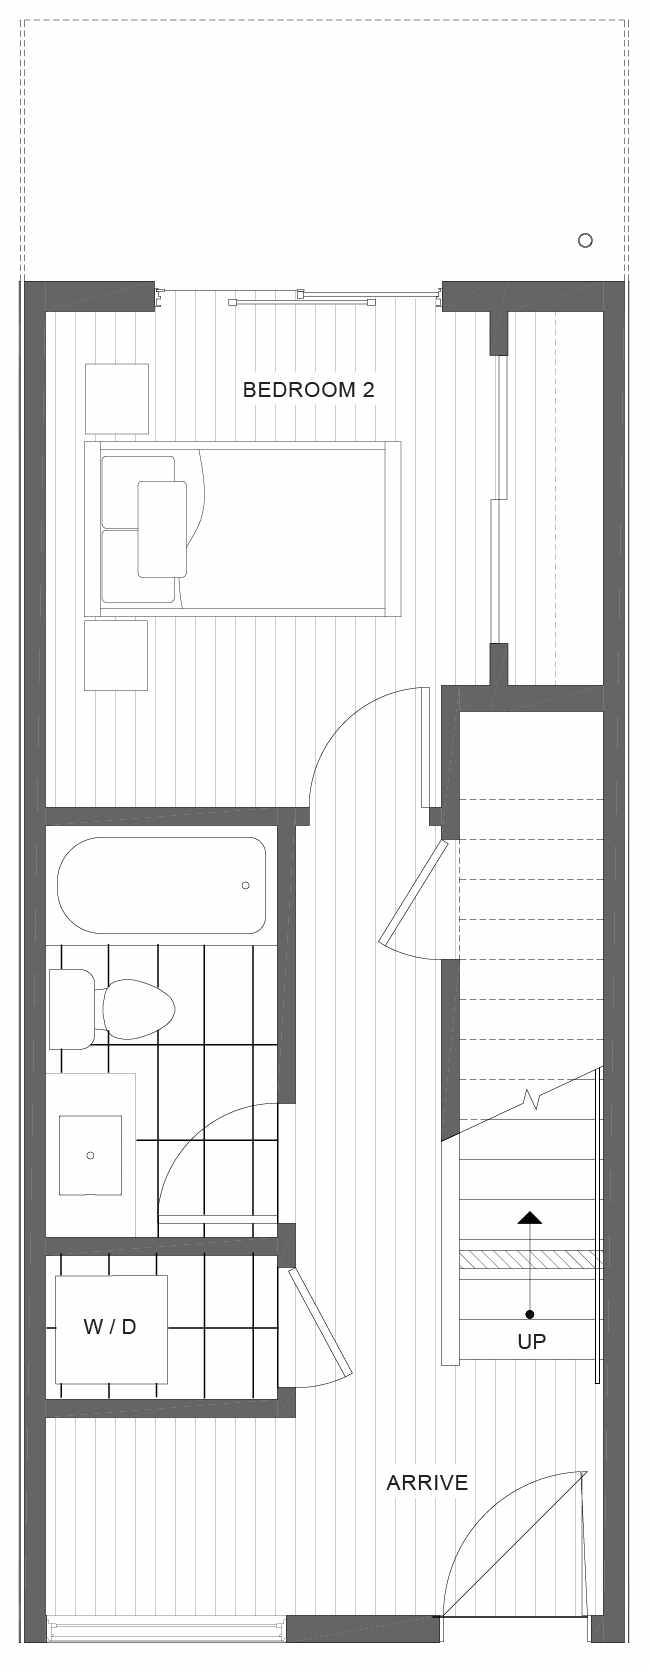 First Floor Plan of 1105E 14th Ave in the Corazon III Townhomes